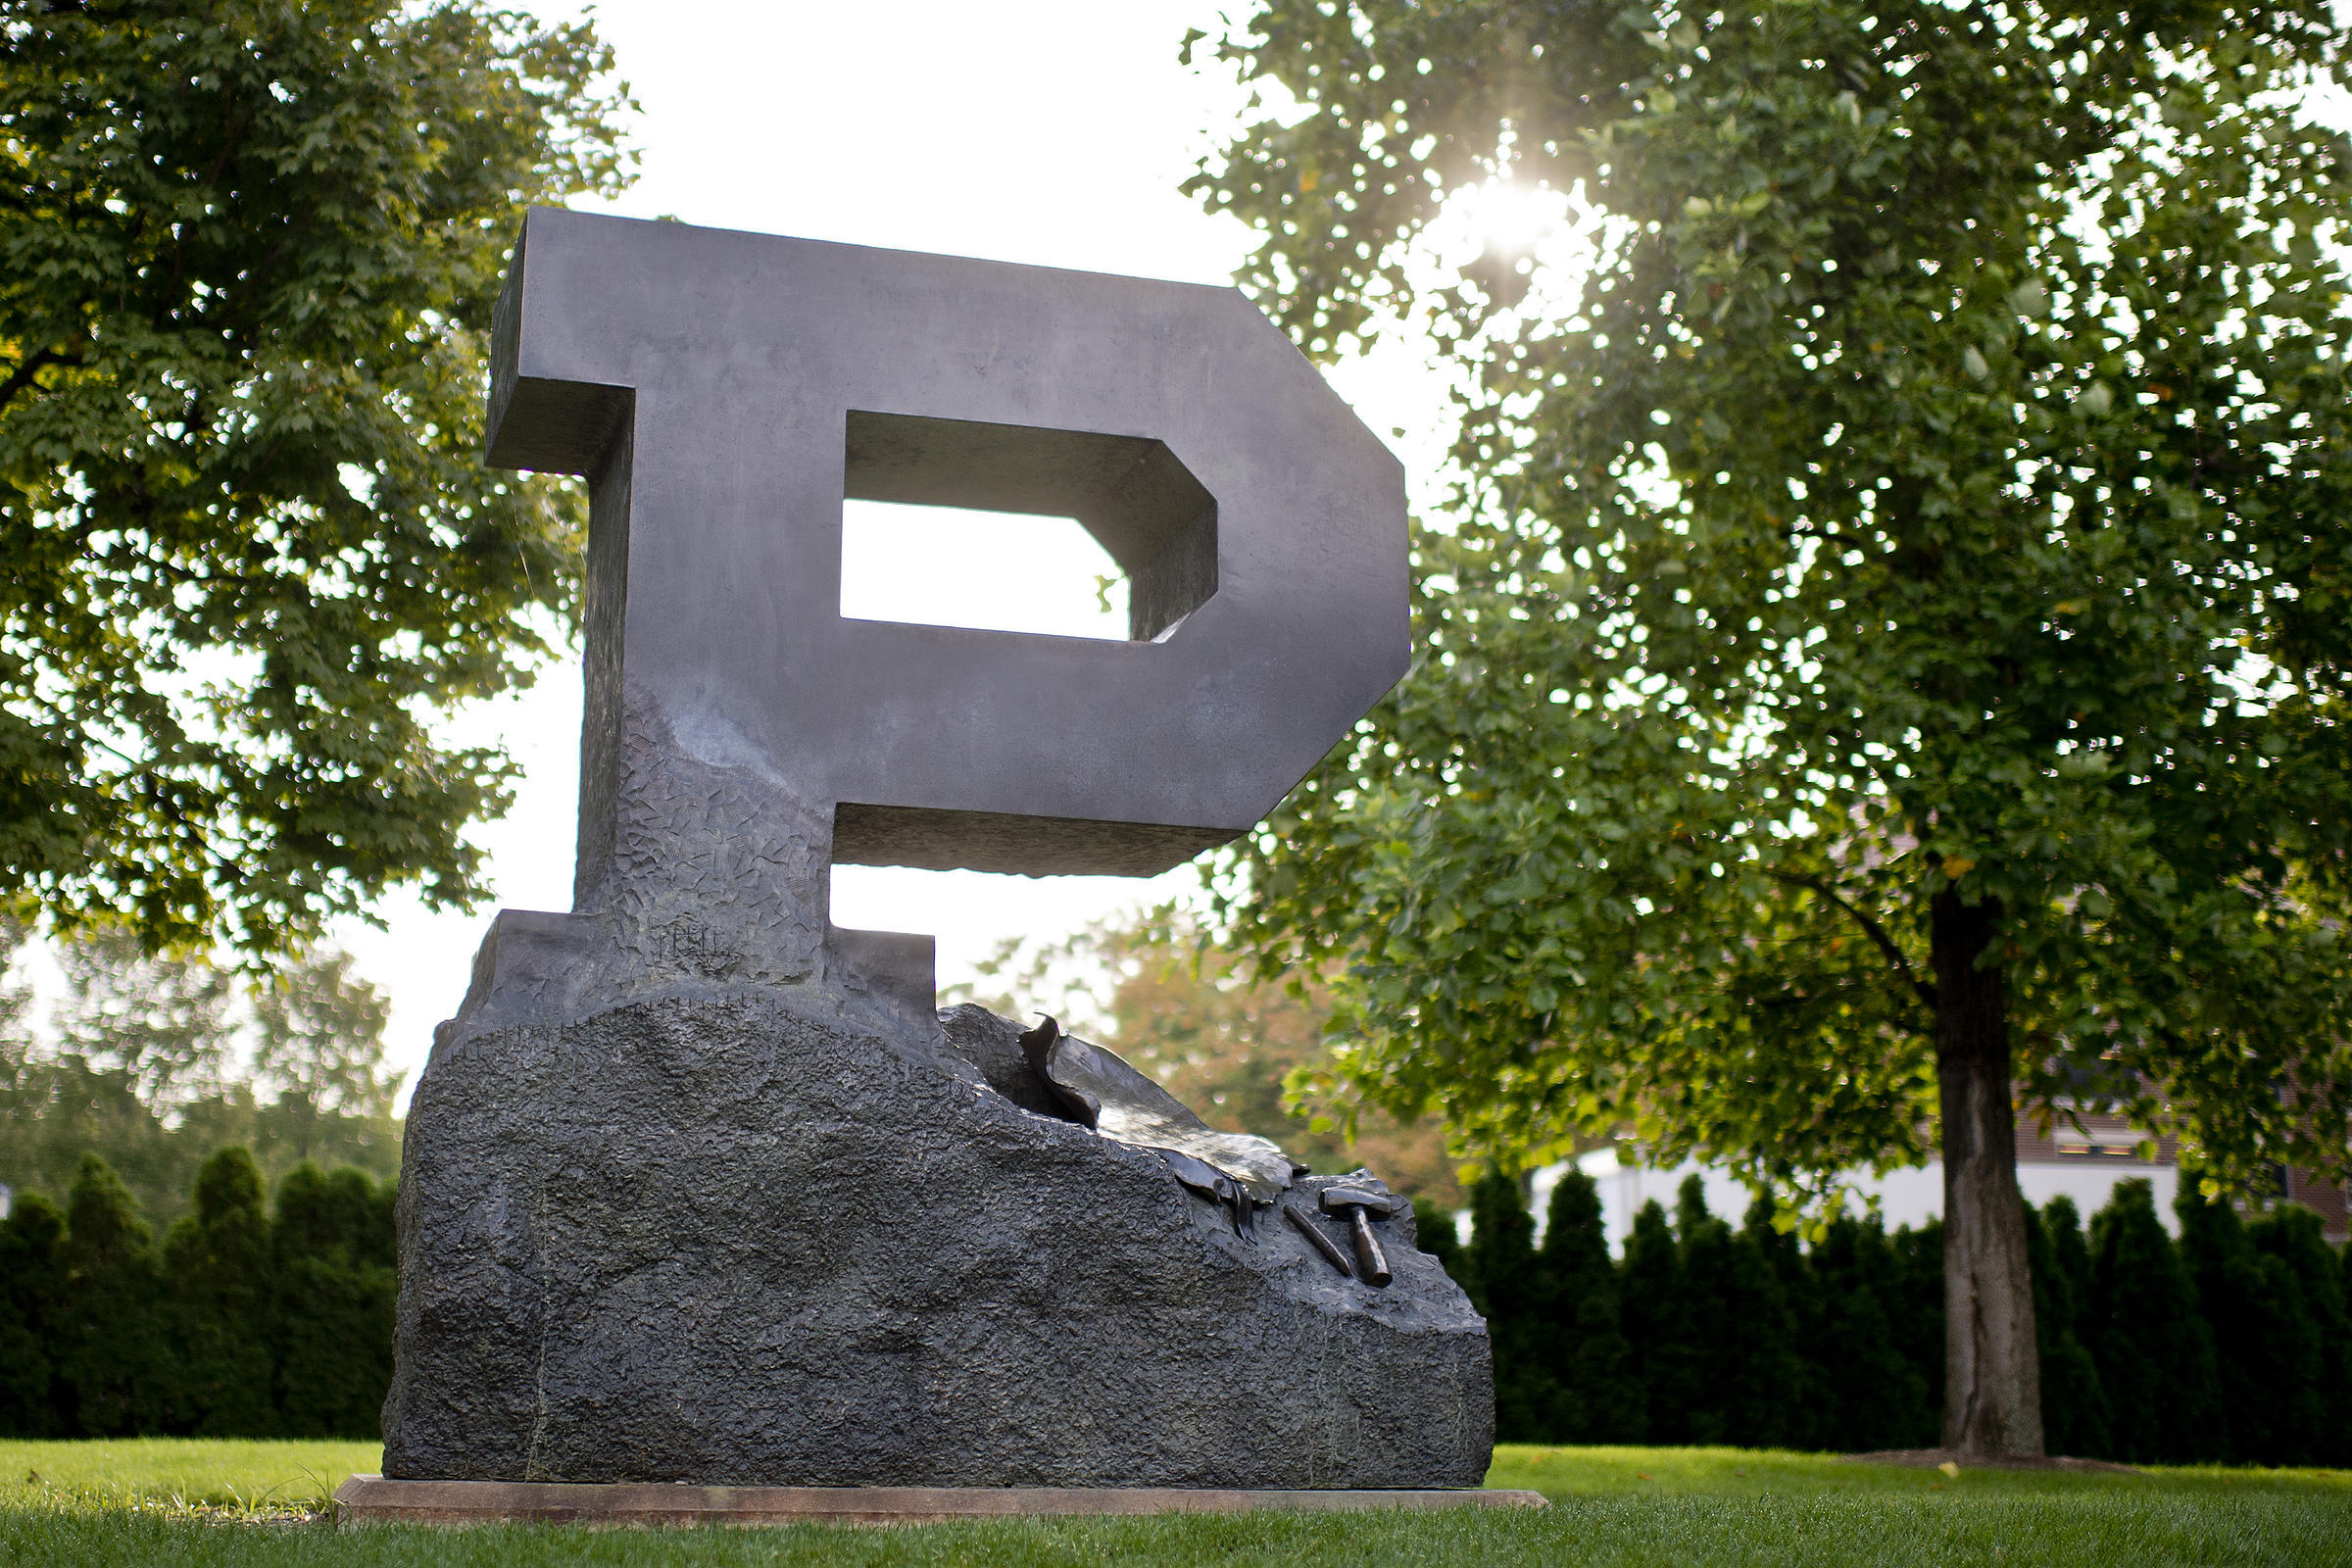 Purdue purchases Kaplan University